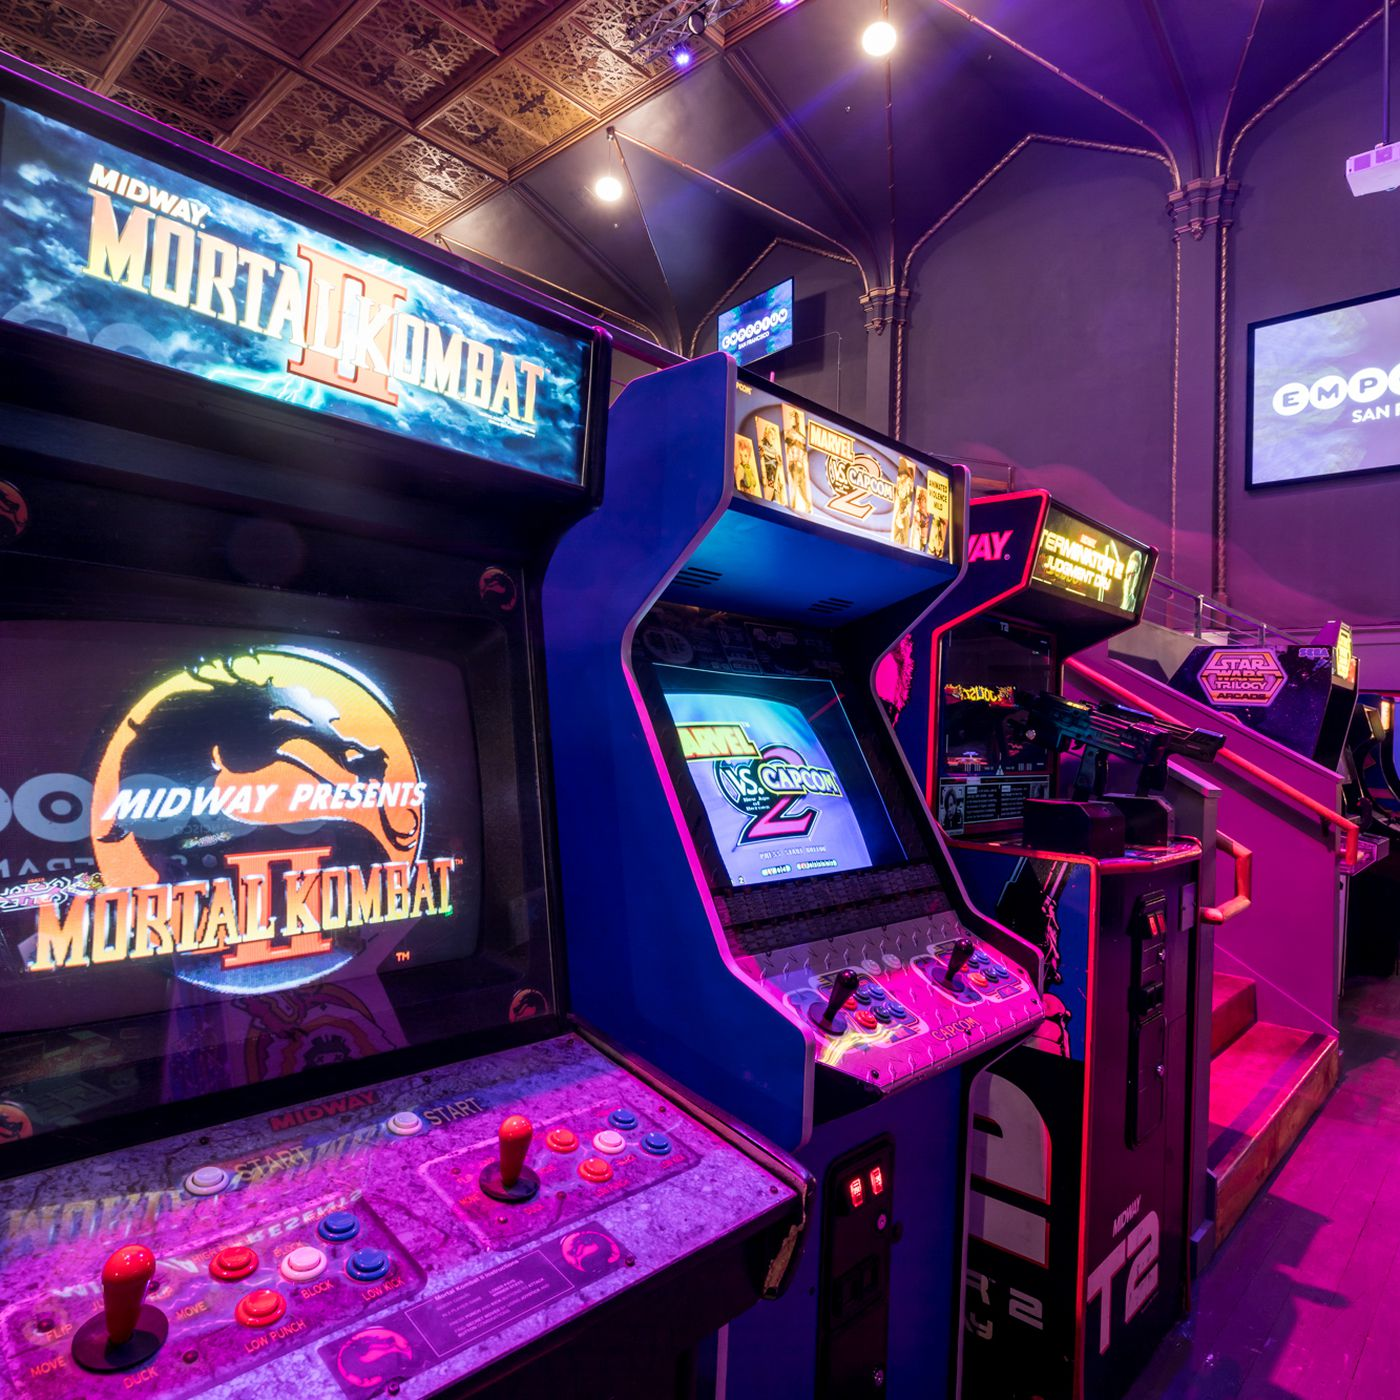 San Francisco Bars With Great Arcade Games - Eater SF